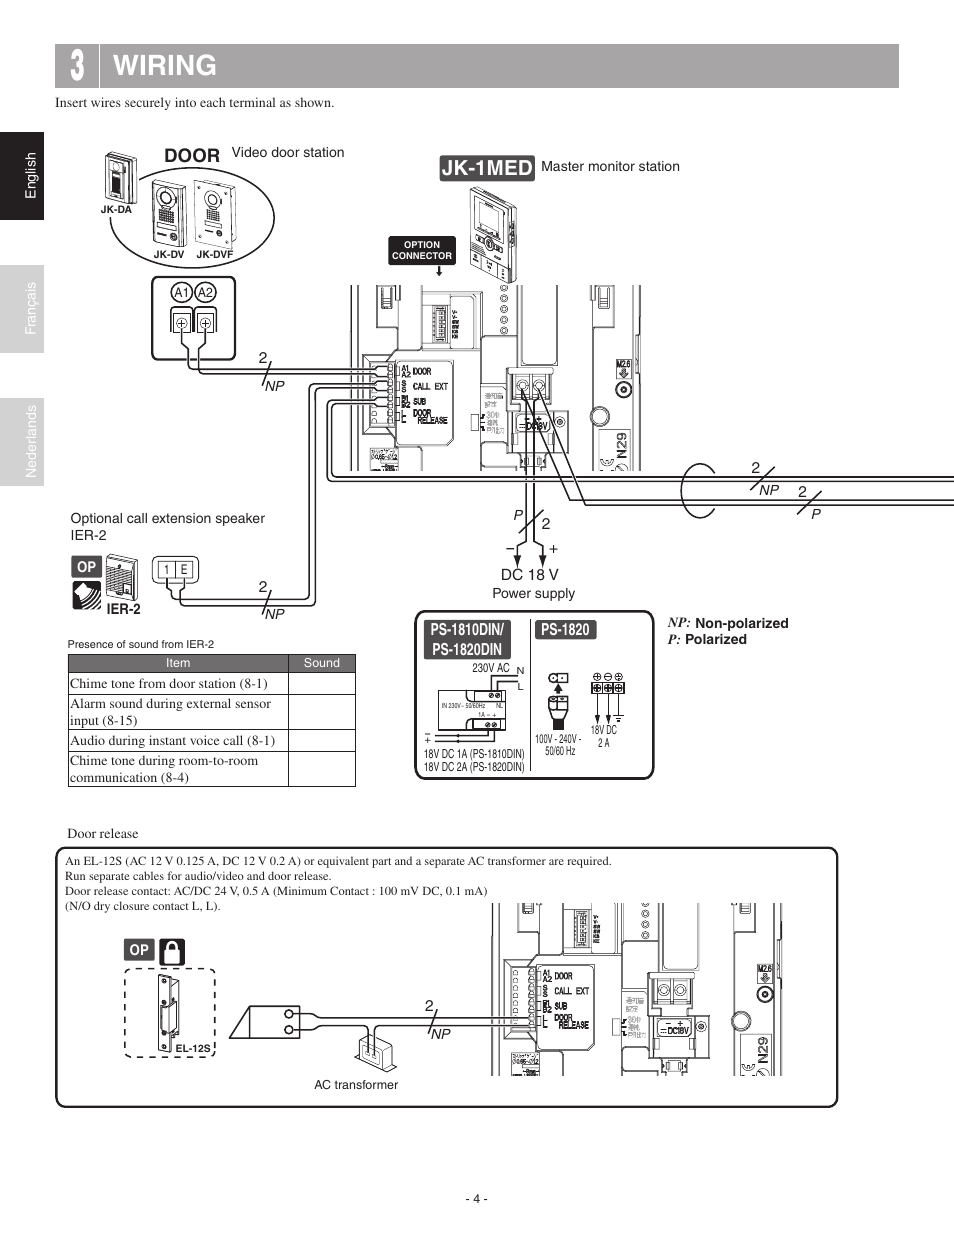 Wiring Jk 1hd 1med Aiphone User Manual Page 4 17 12s Diagram 1sd Ab C